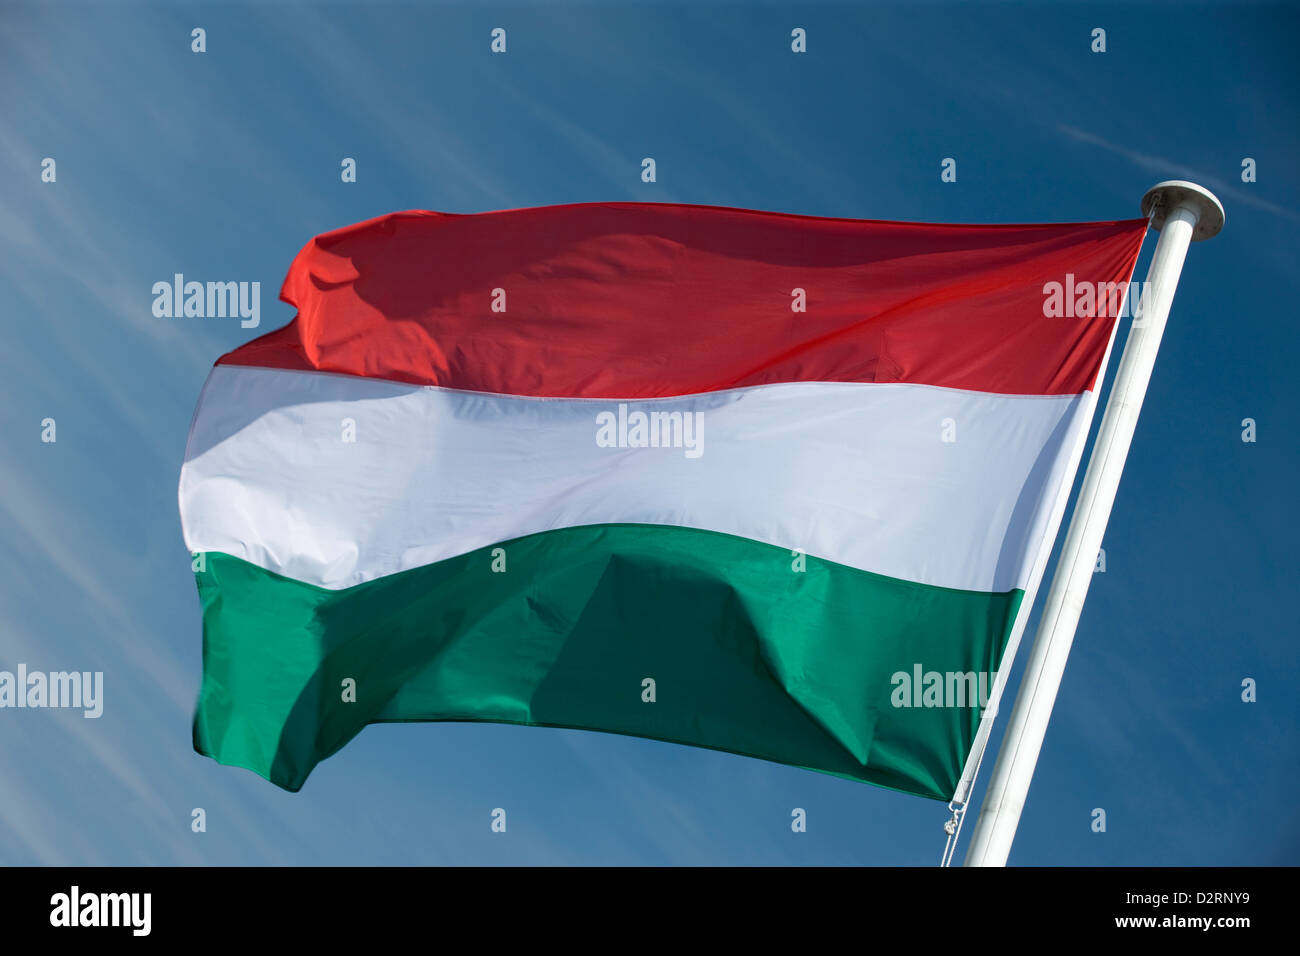 HUNGARIAN FLAG FLYING ON FLAGPOLE - Stock Image